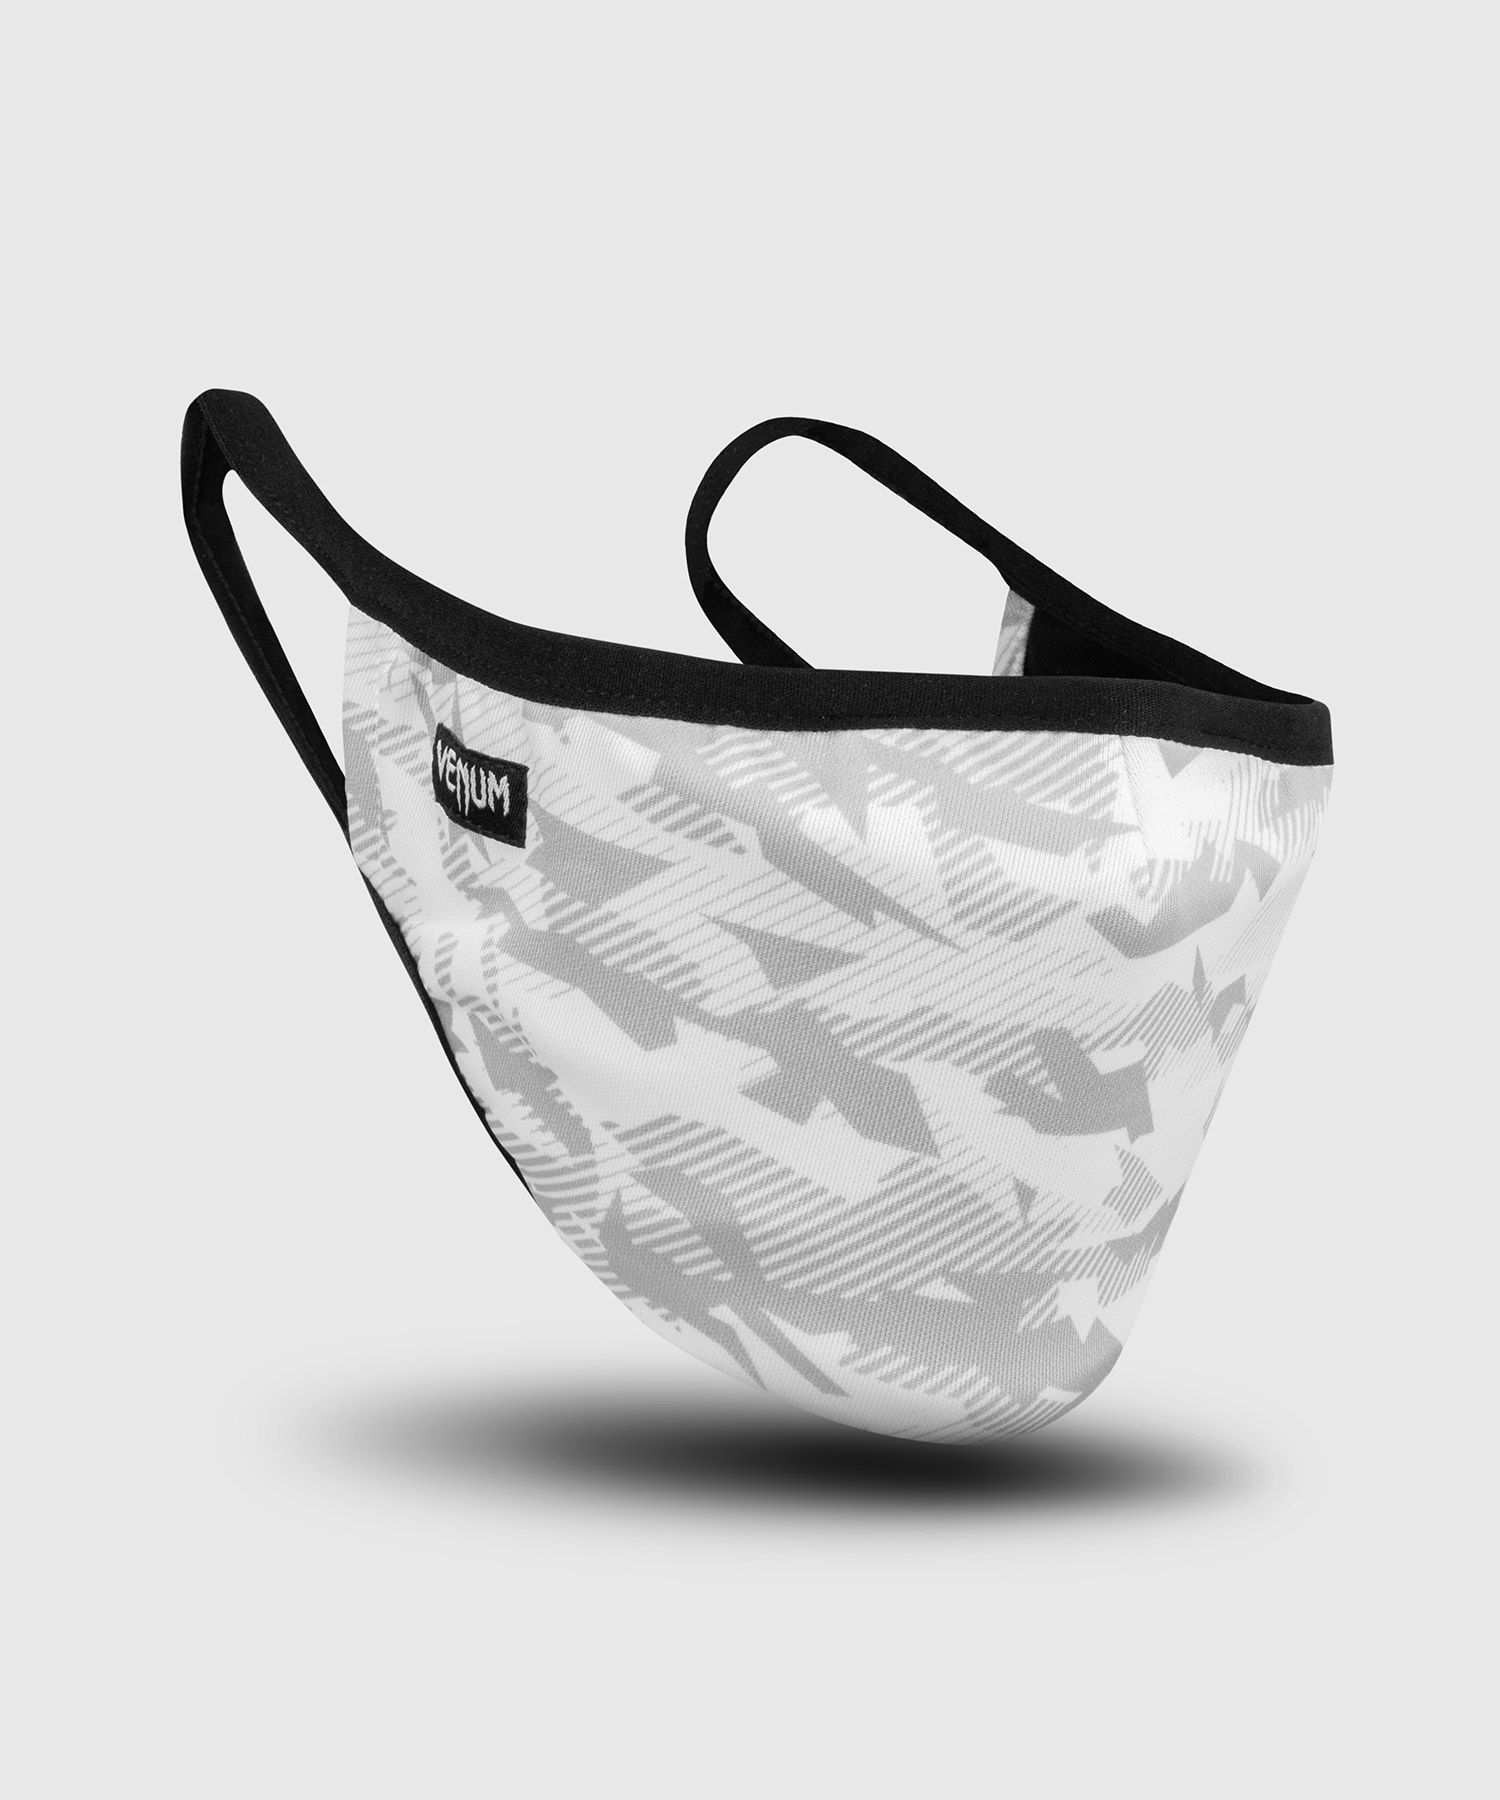 VENUM FACE MASK - White/Camo